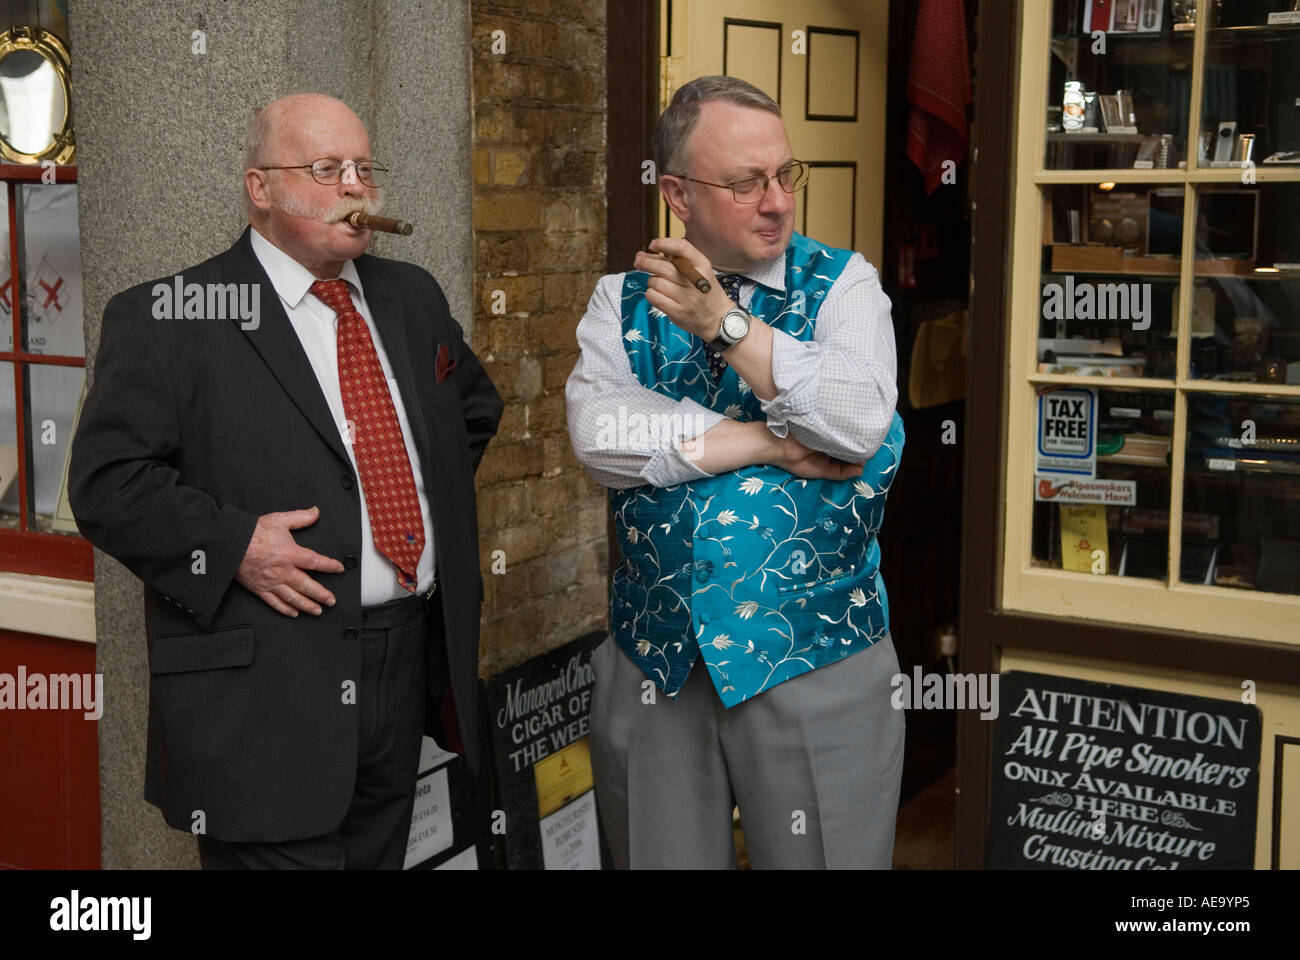 Ravishing Smokers London Stock Photos  Smokers London Stock Images  Alamy With Remarkable Covent Garden West Central London England Two Male Cigar Smokers Outside A  Smoking Smokers Shop  With Beauteous Garden Candle Lantern Also Hilton Garden Inn Luton North In Addition Air Plant Garden And Landford Garden Centre As Well As Drapers Gardens Additionally In The Night Garden Colouring From Alamycom With   Remarkable Smokers London Stock Photos  Smokers London Stock Images  Alamy With Beauteous Covent Garden West Central London England Two Male Cigar Smokers Outside A  Smoking Smokers Shop  And Ravishing Garden Candle Lantern Also Hilton Garden Inn Luton North In Addition Air Plant Garden From Alamycom